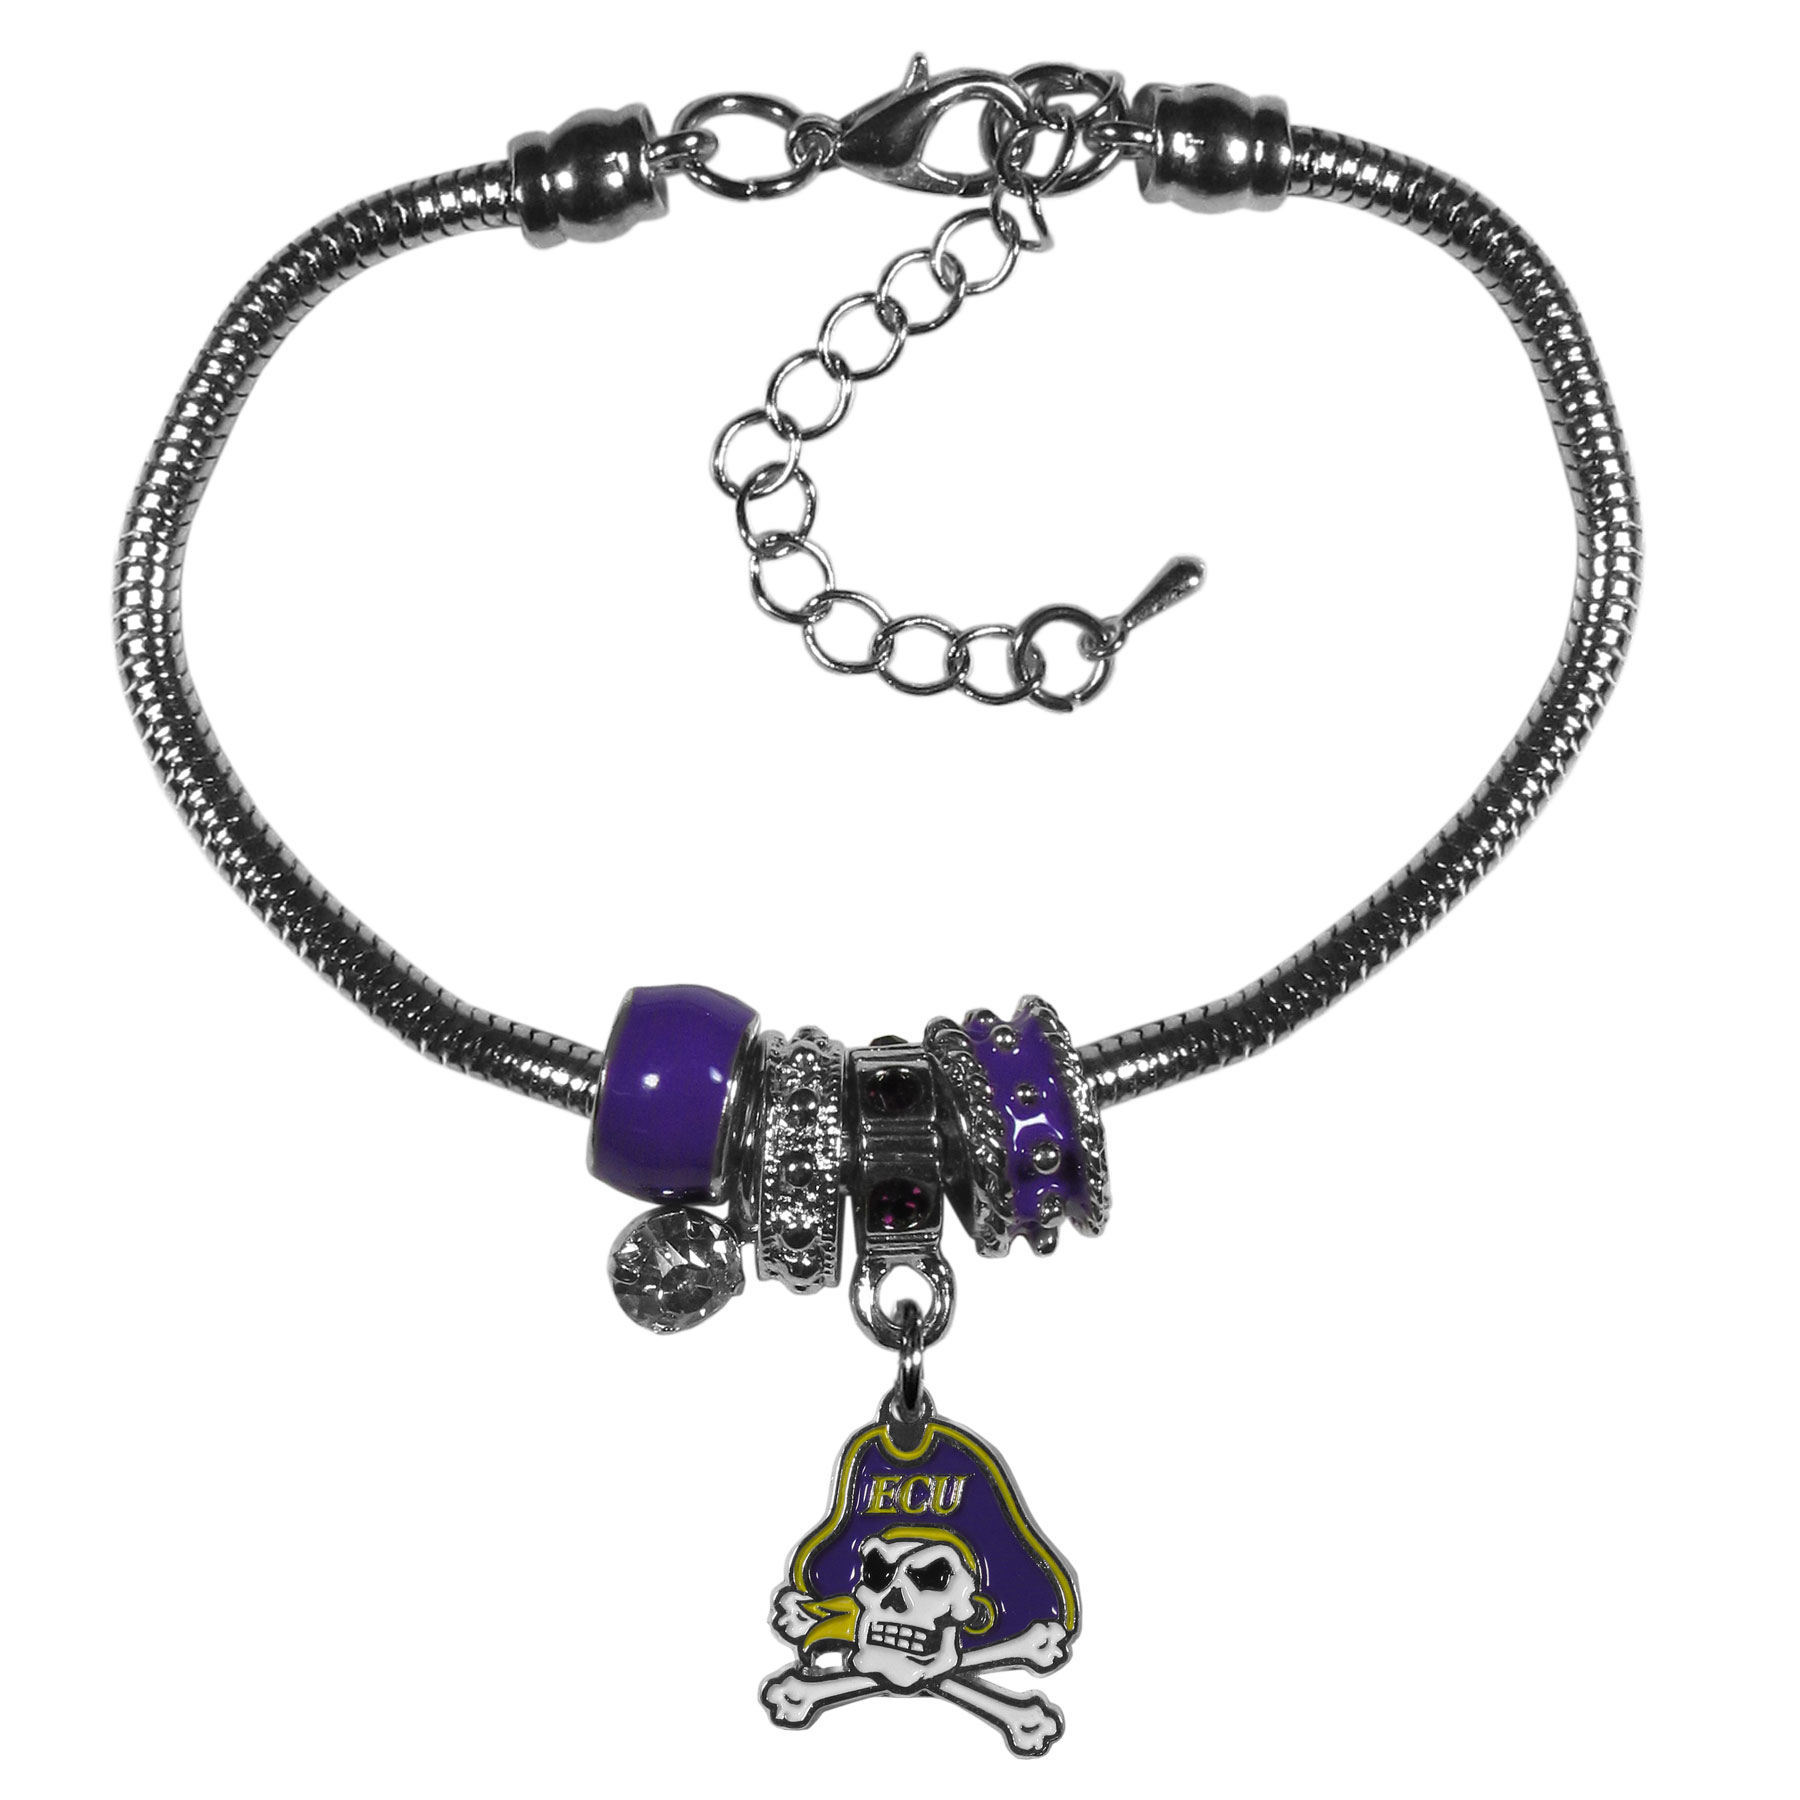 East Carolina Pirates Euro Bead Bracelet - We have combined the wildly popular Euro style beads with your favorite team to create our  East Carolina Pirates bead bracelet. The 7.5 inch snake chain with 2 inch extender features 4 Euro beads with enameled team colors and rhinestone accents with a high polish, nickel free charm and rhinestone charm. Perfect way to show off your team pride.